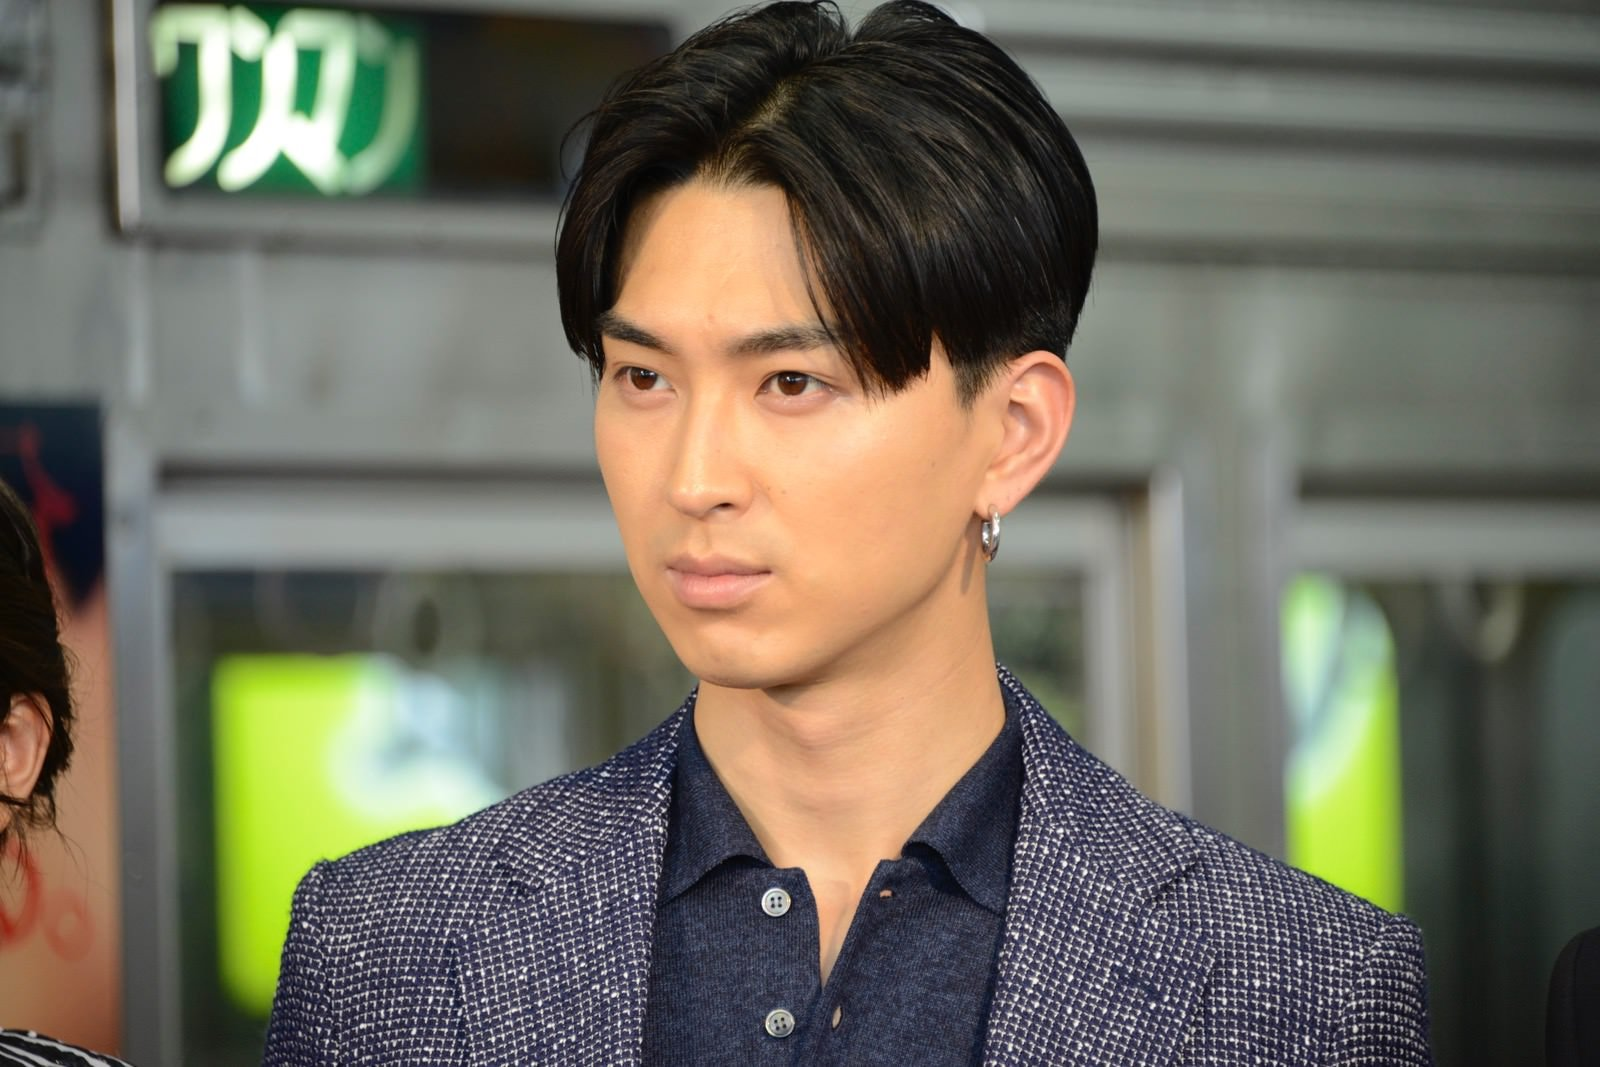 img 5a6d709f0a8ed.png?resize=1200,630 - 熱愛報道の松田翔太。恋多きうわさもついに年貢の納め時か。